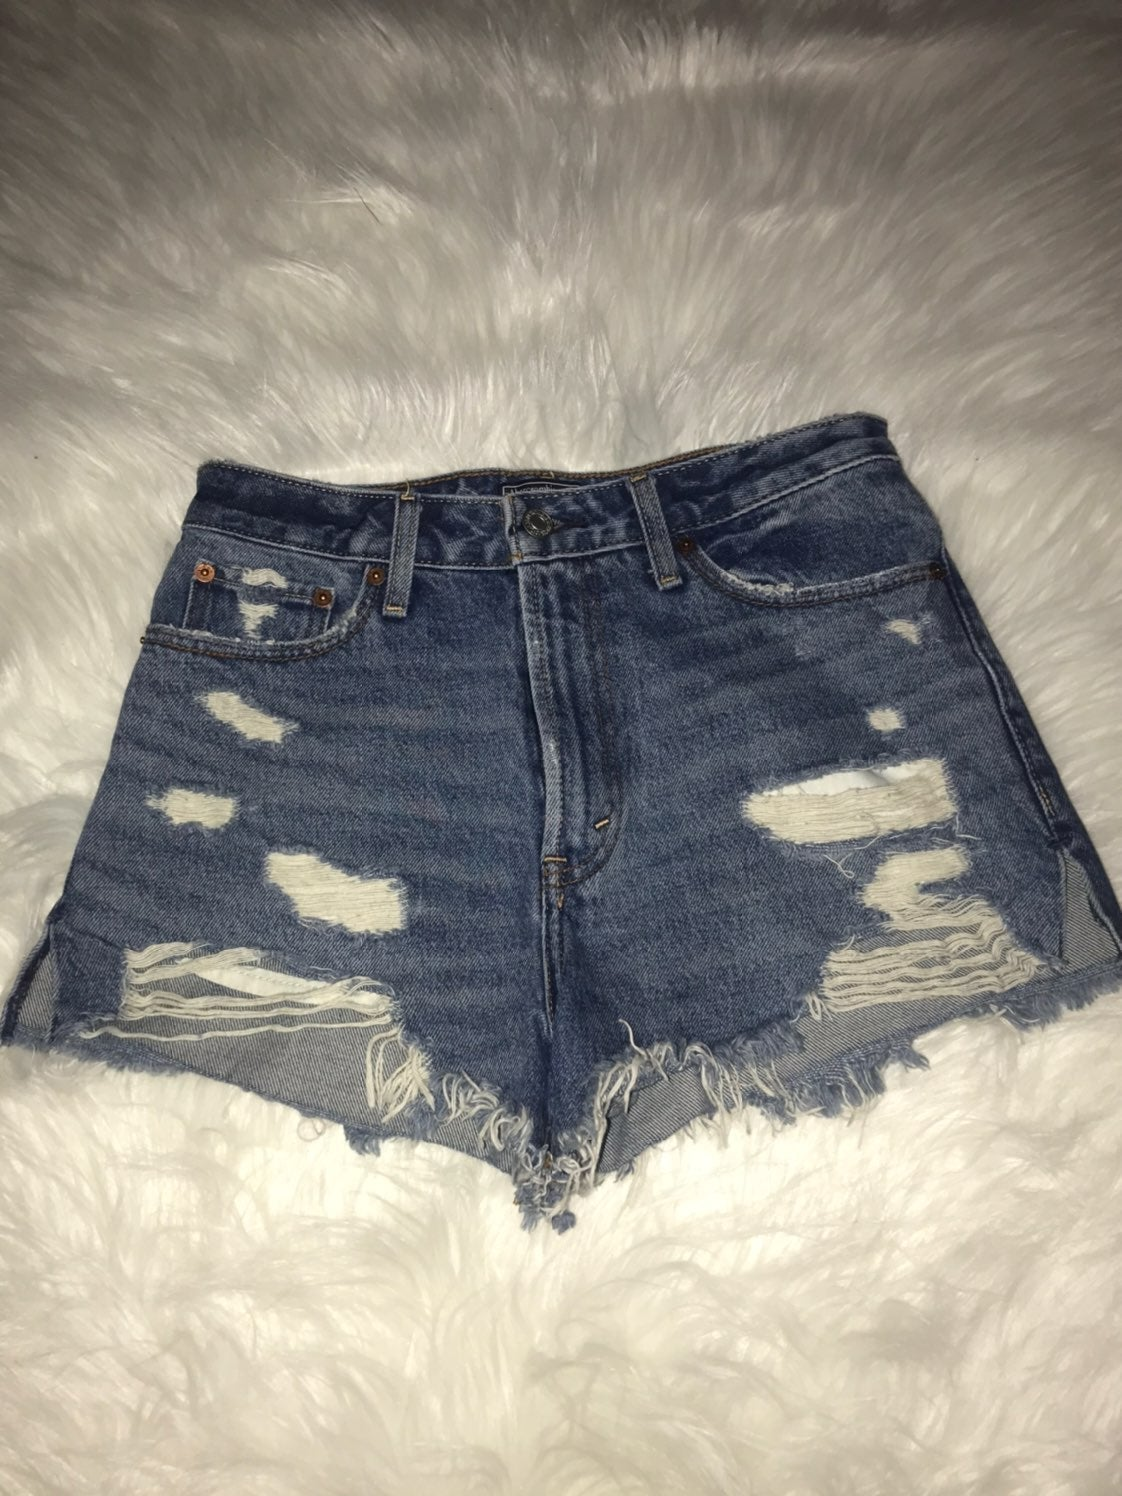 Abercrombie and Fitch womens shorts size